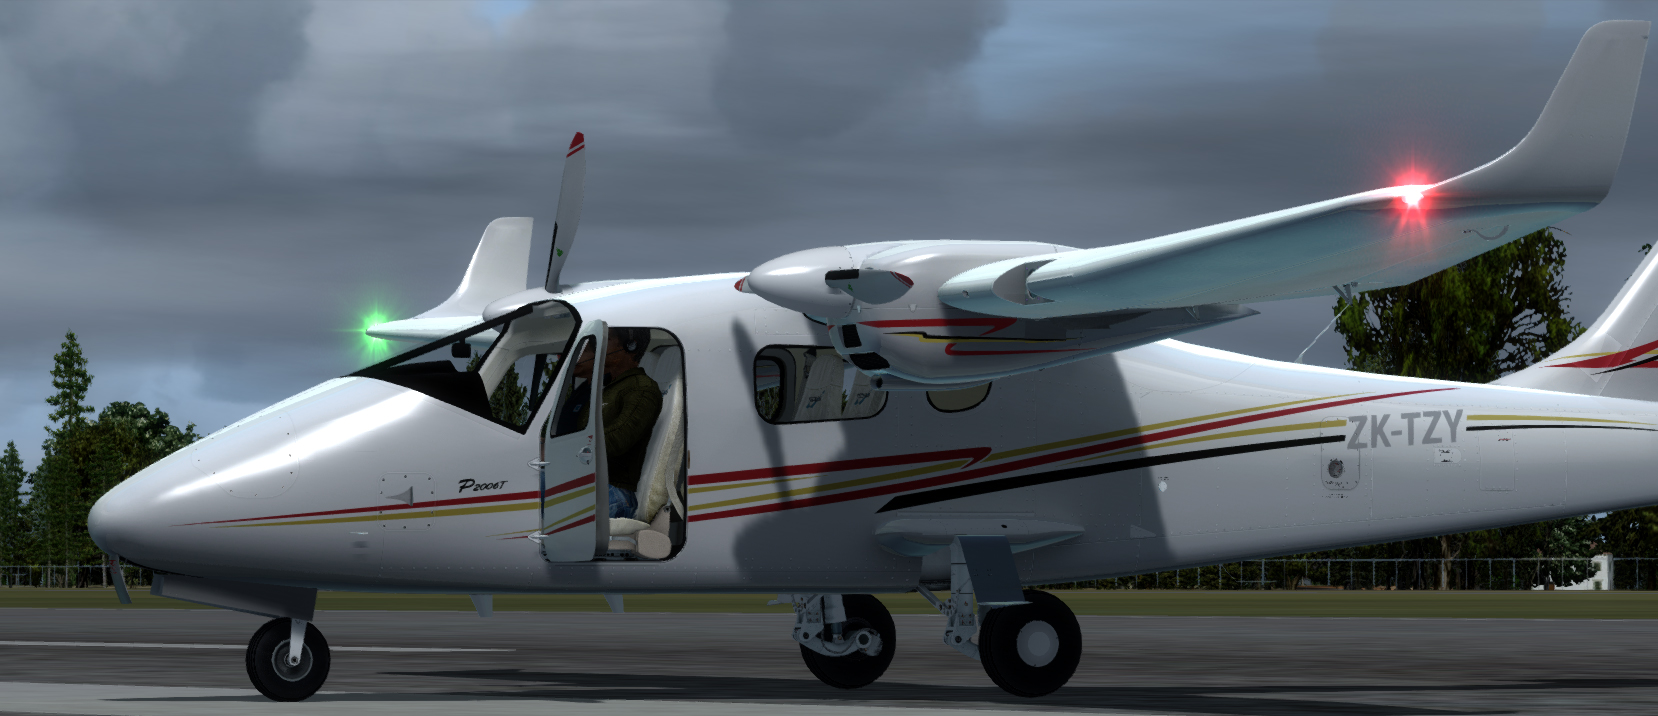 Fsx Planes Wilco Publishing Announces The P2006t By Tecnam For